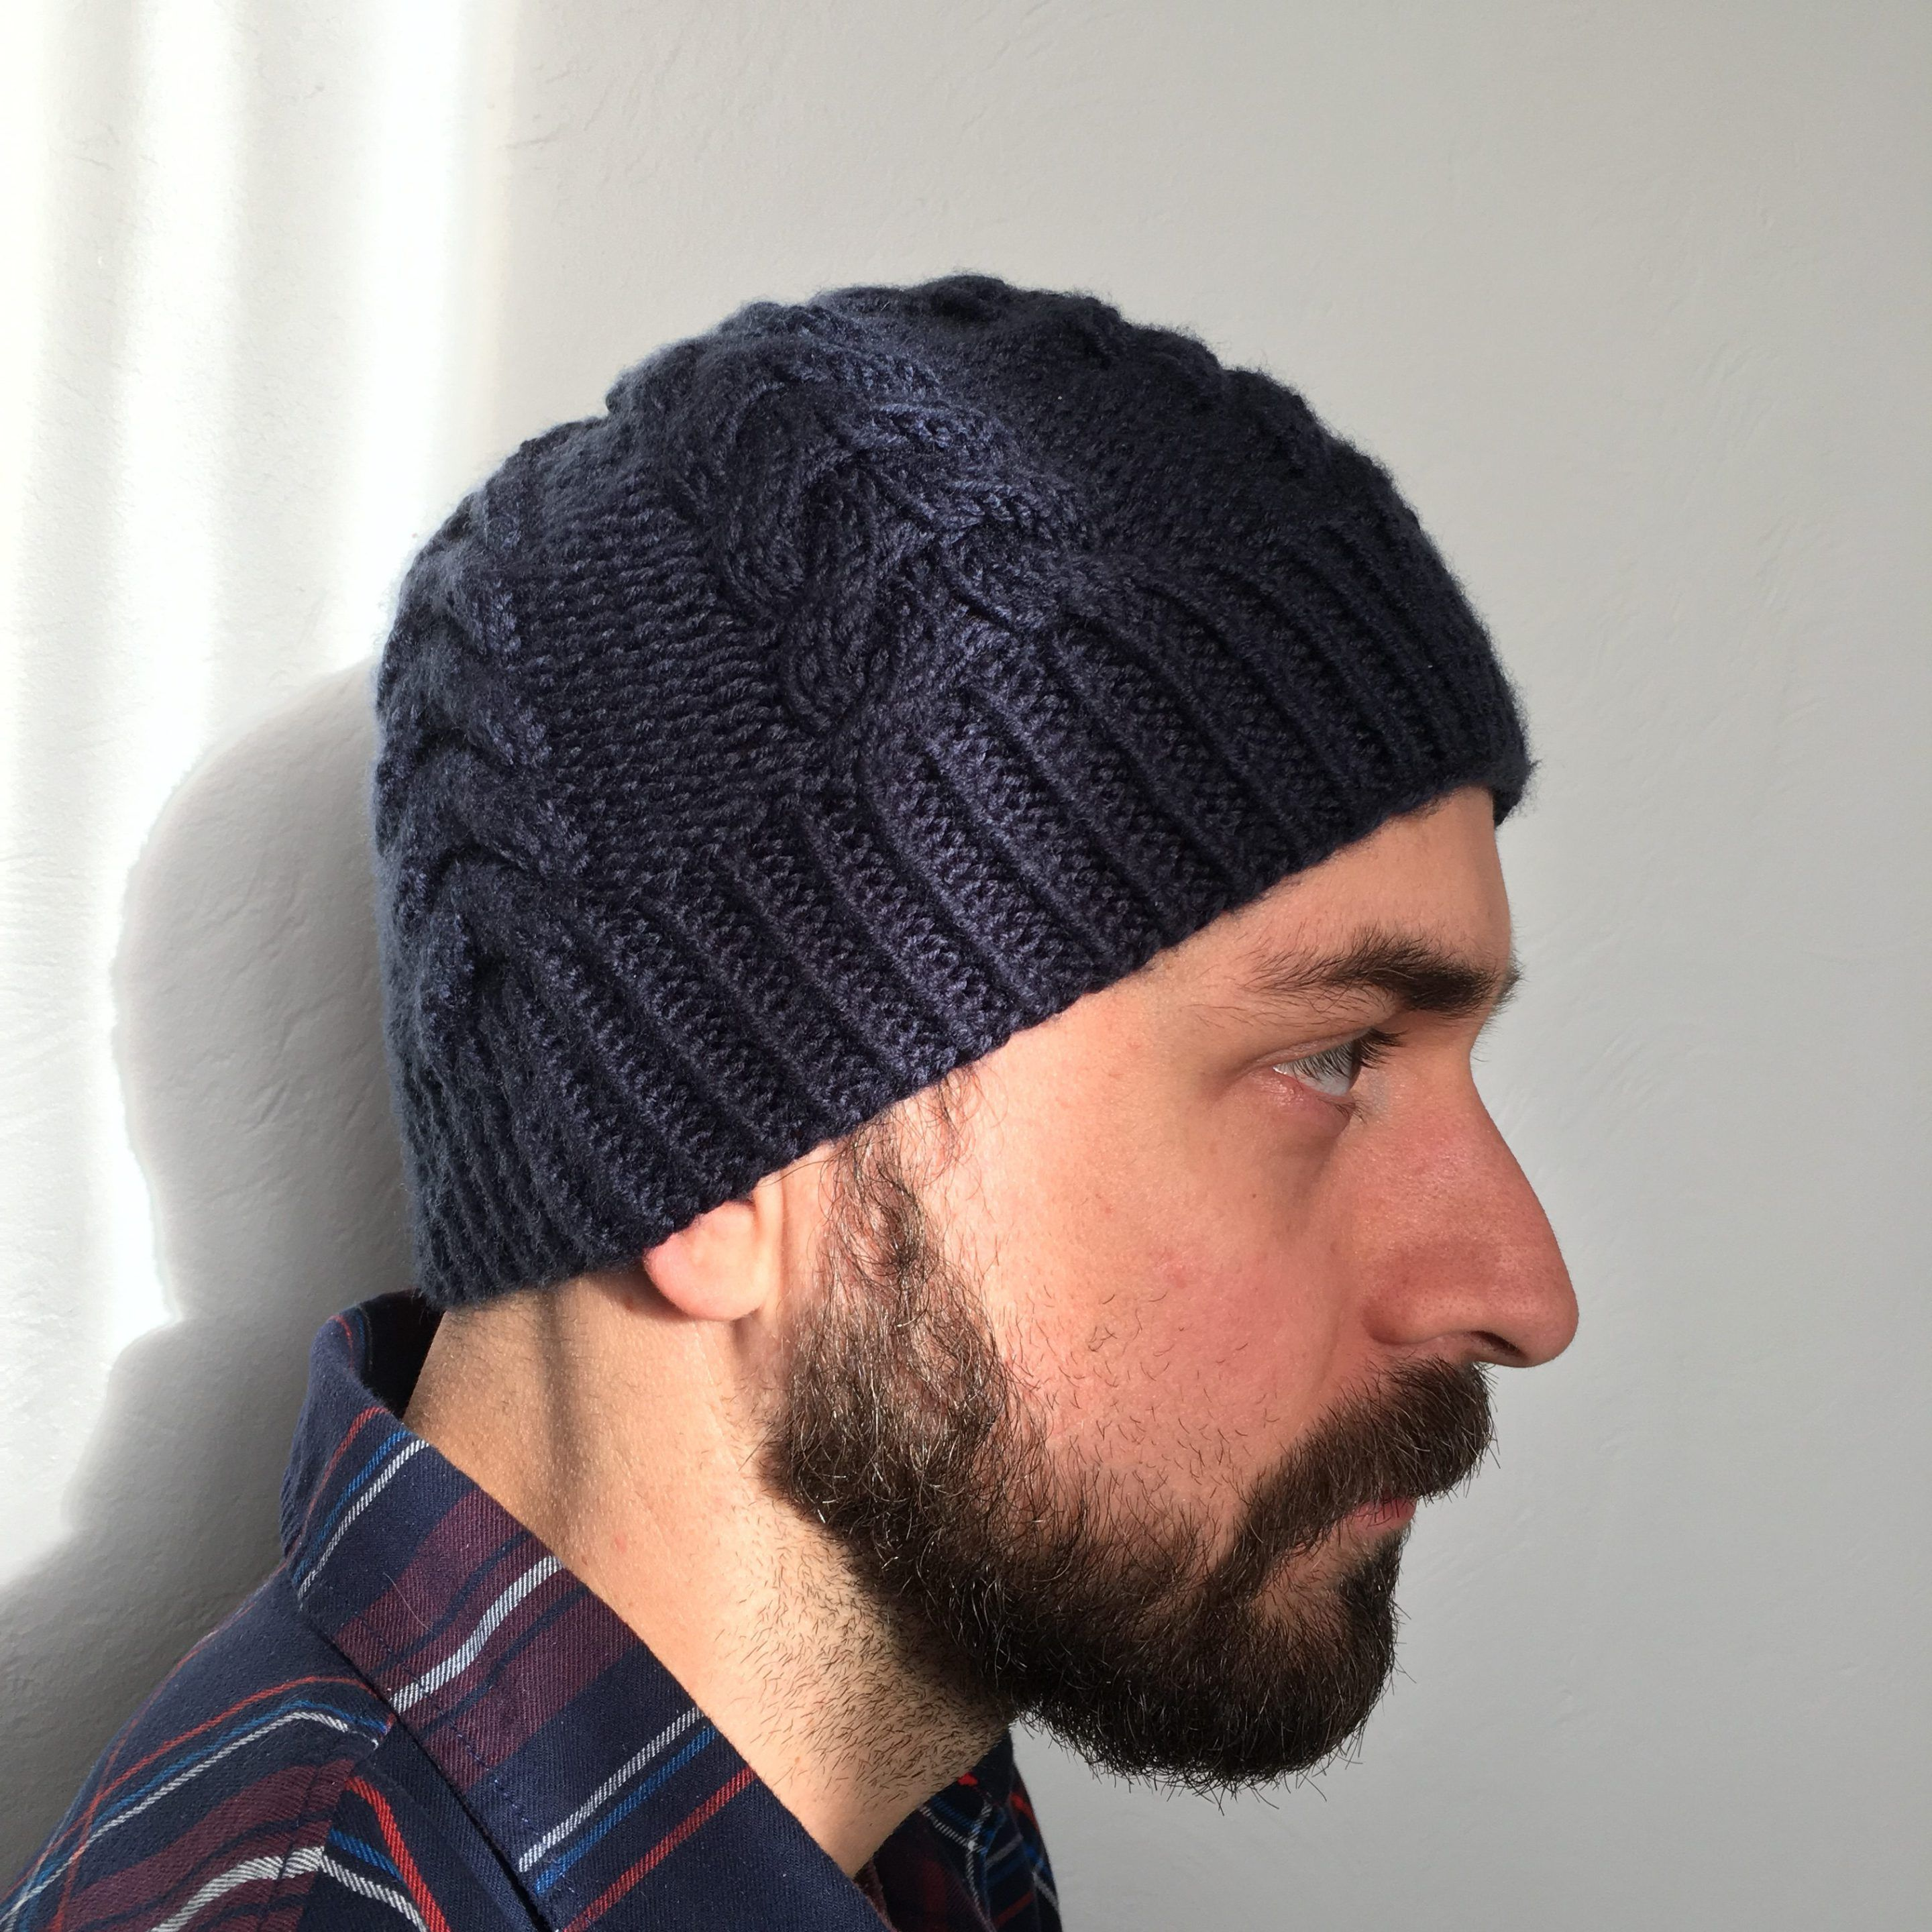 be299f8eb9a Free Chevron Men s Knit Hat Pattern from Knitting in the Park